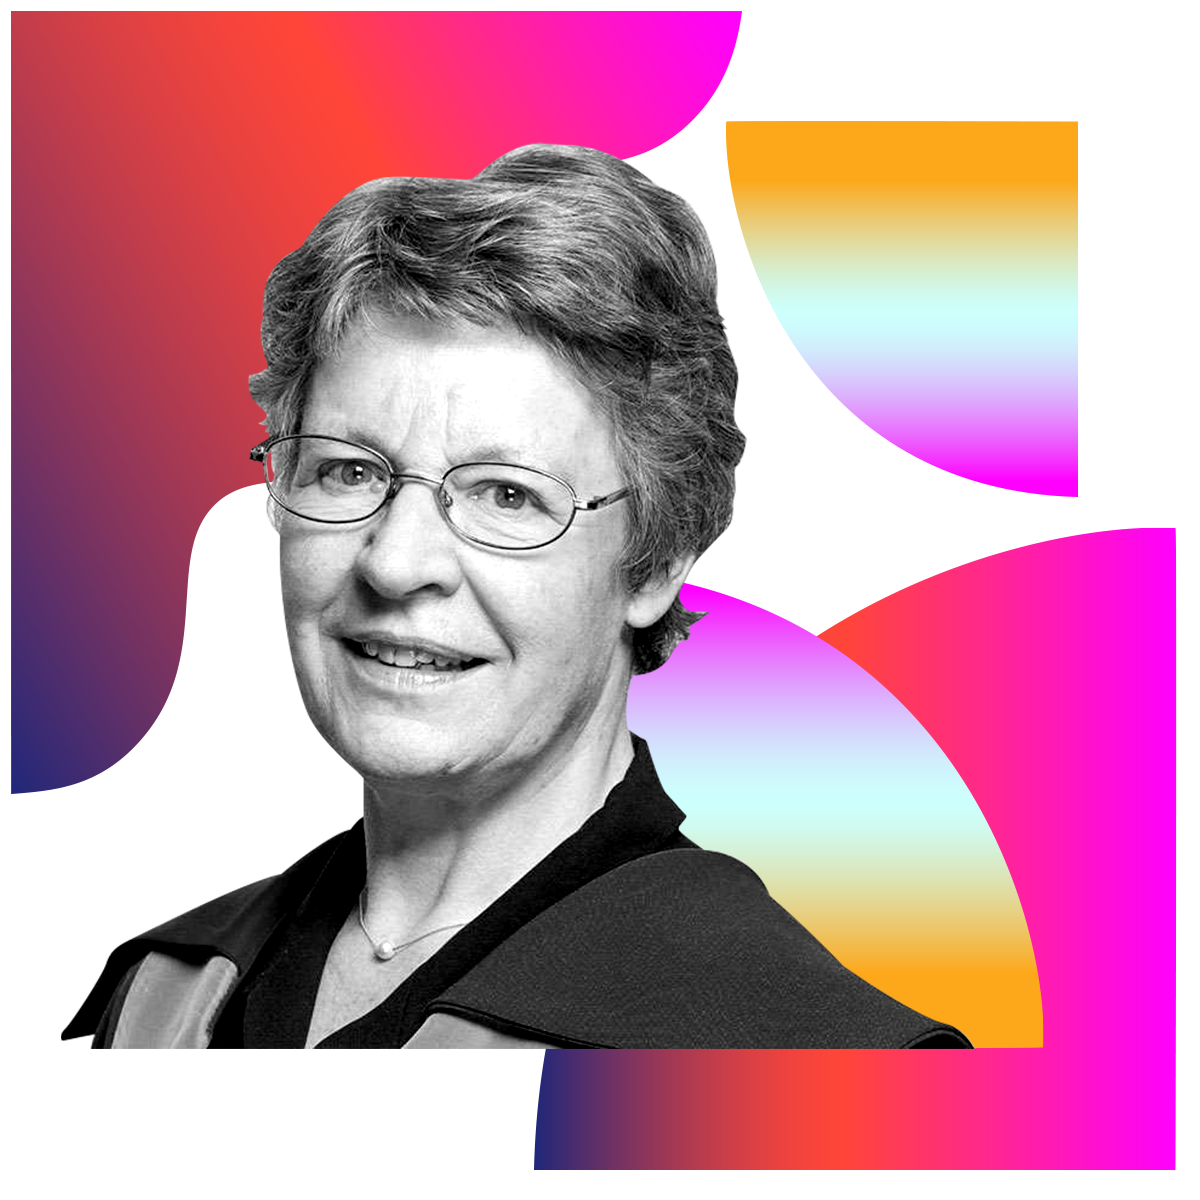 Photo illustration of Jocelyn Bell Burnell in black and white surrounded by colored gradients